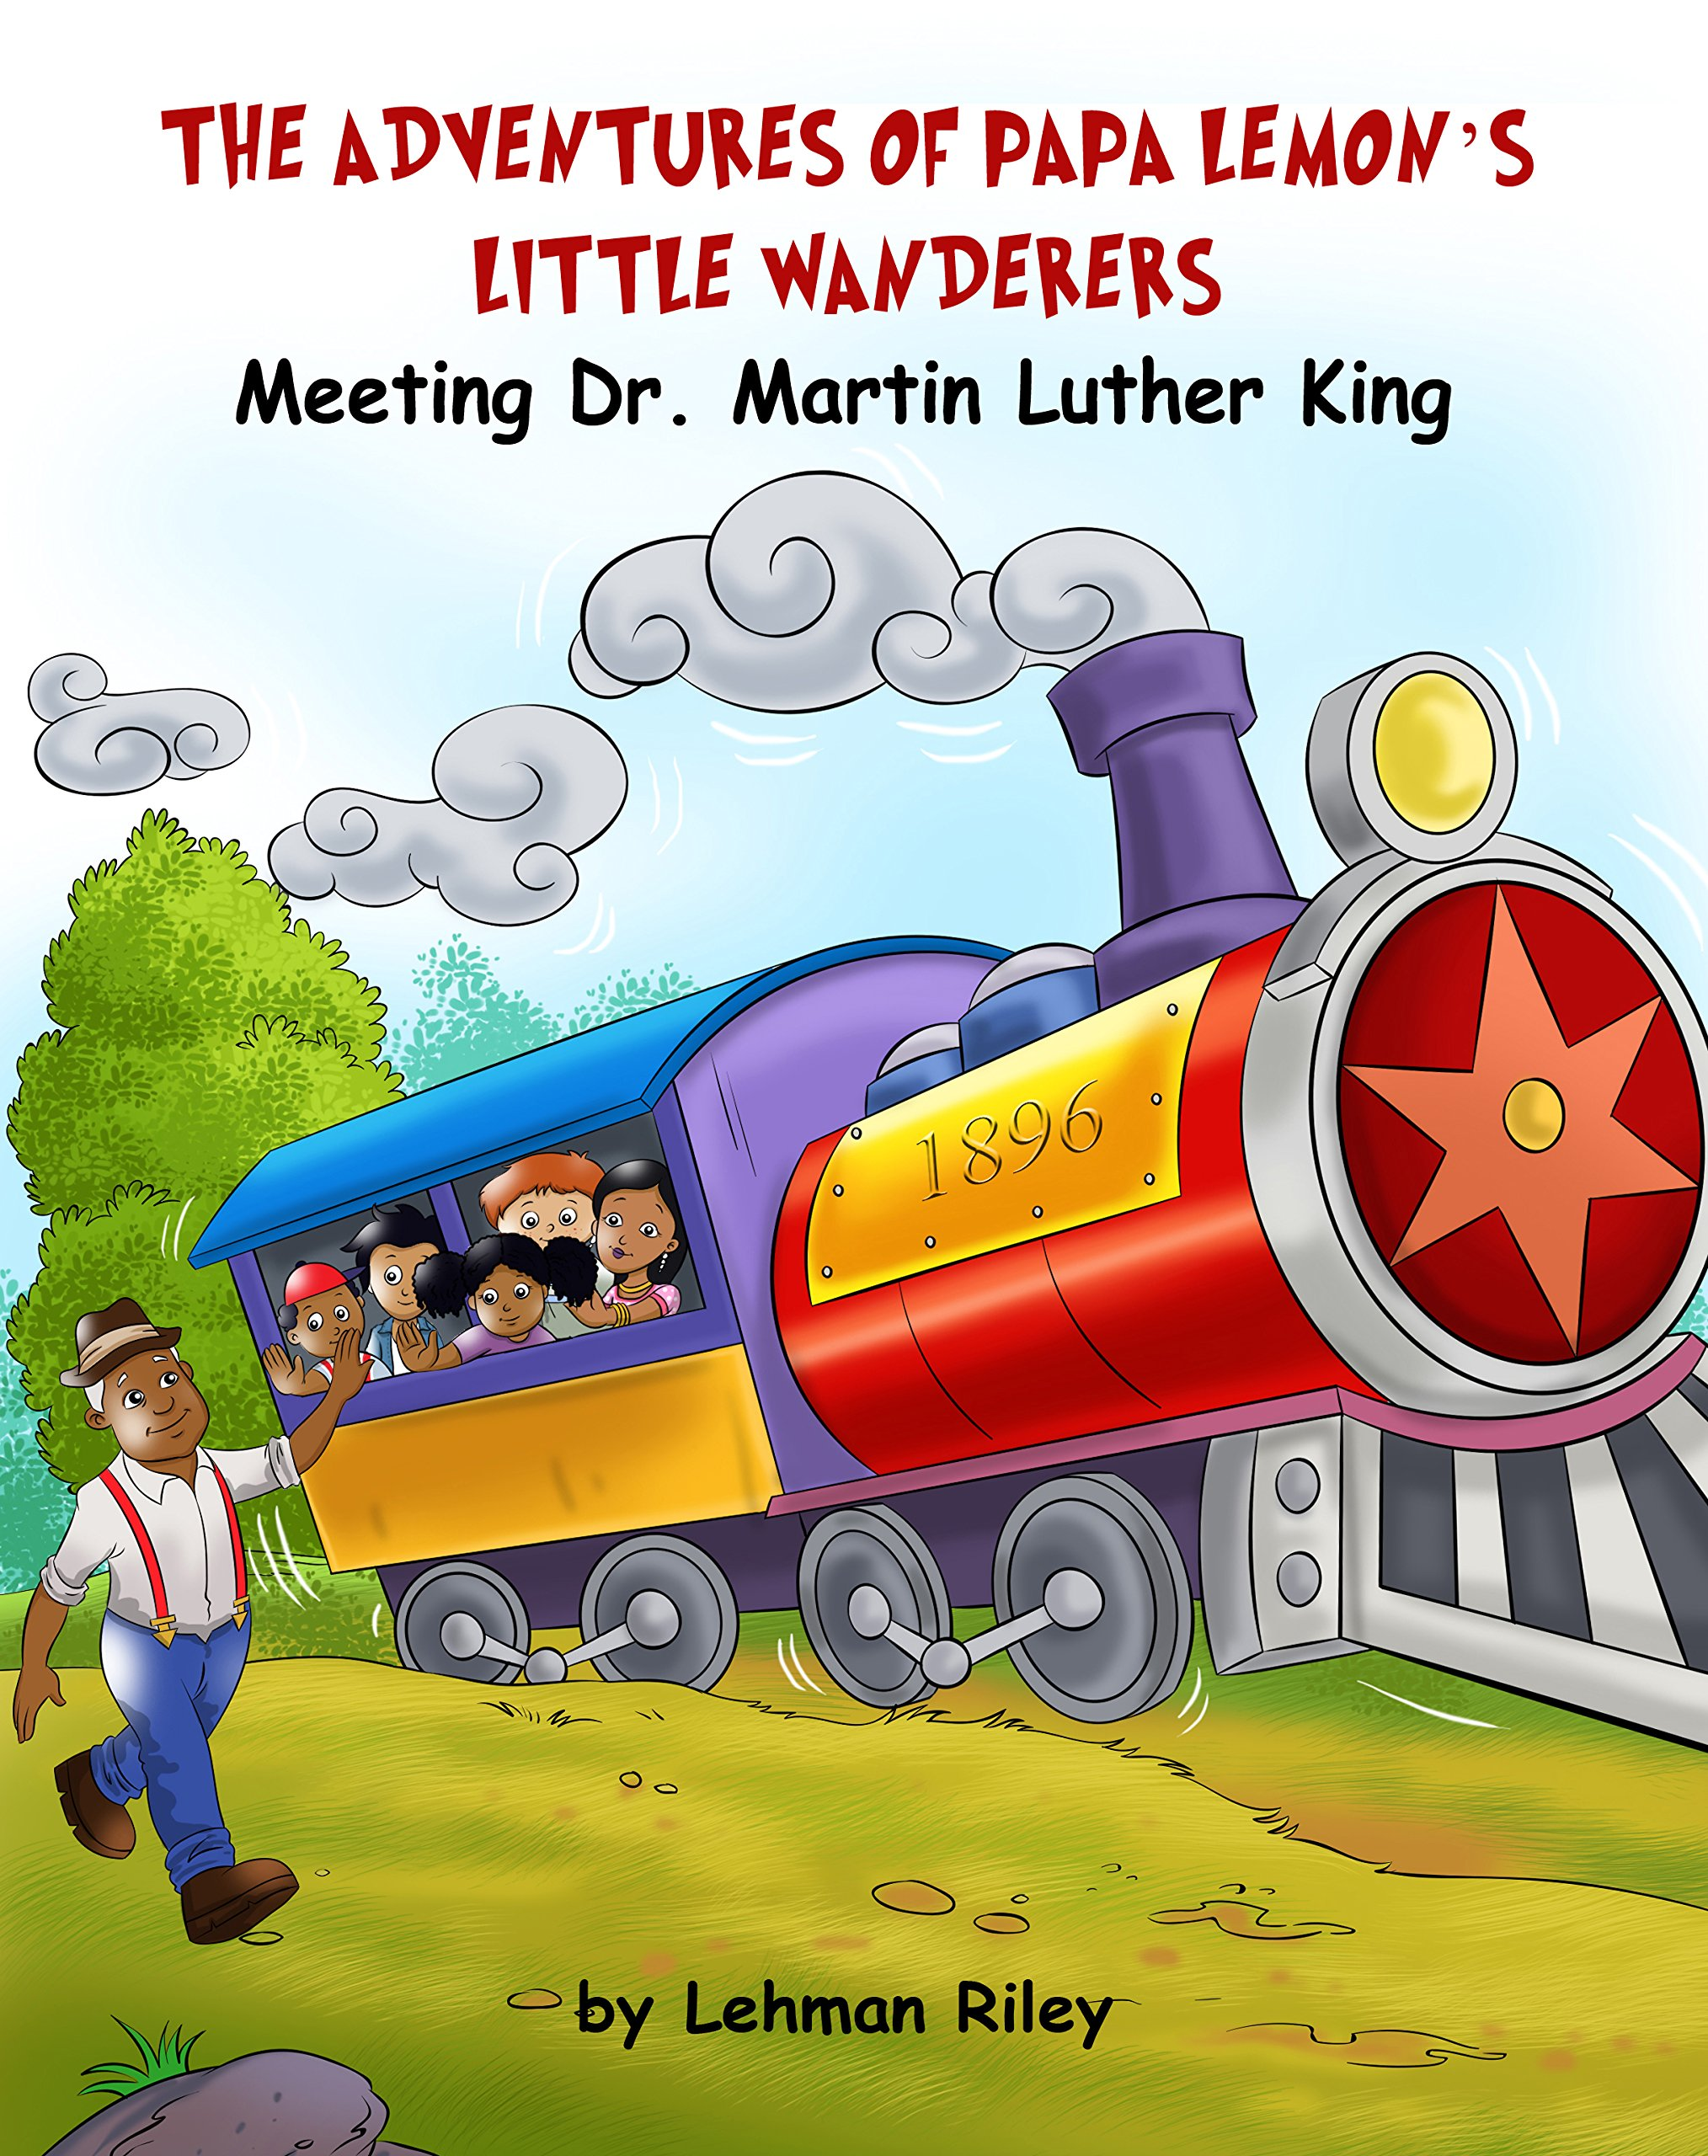 Download The Adventures of Papa Lemon's Little Wanderers Book 1: Meeting Dr. Martin Luther King (2nd Edition) PDF